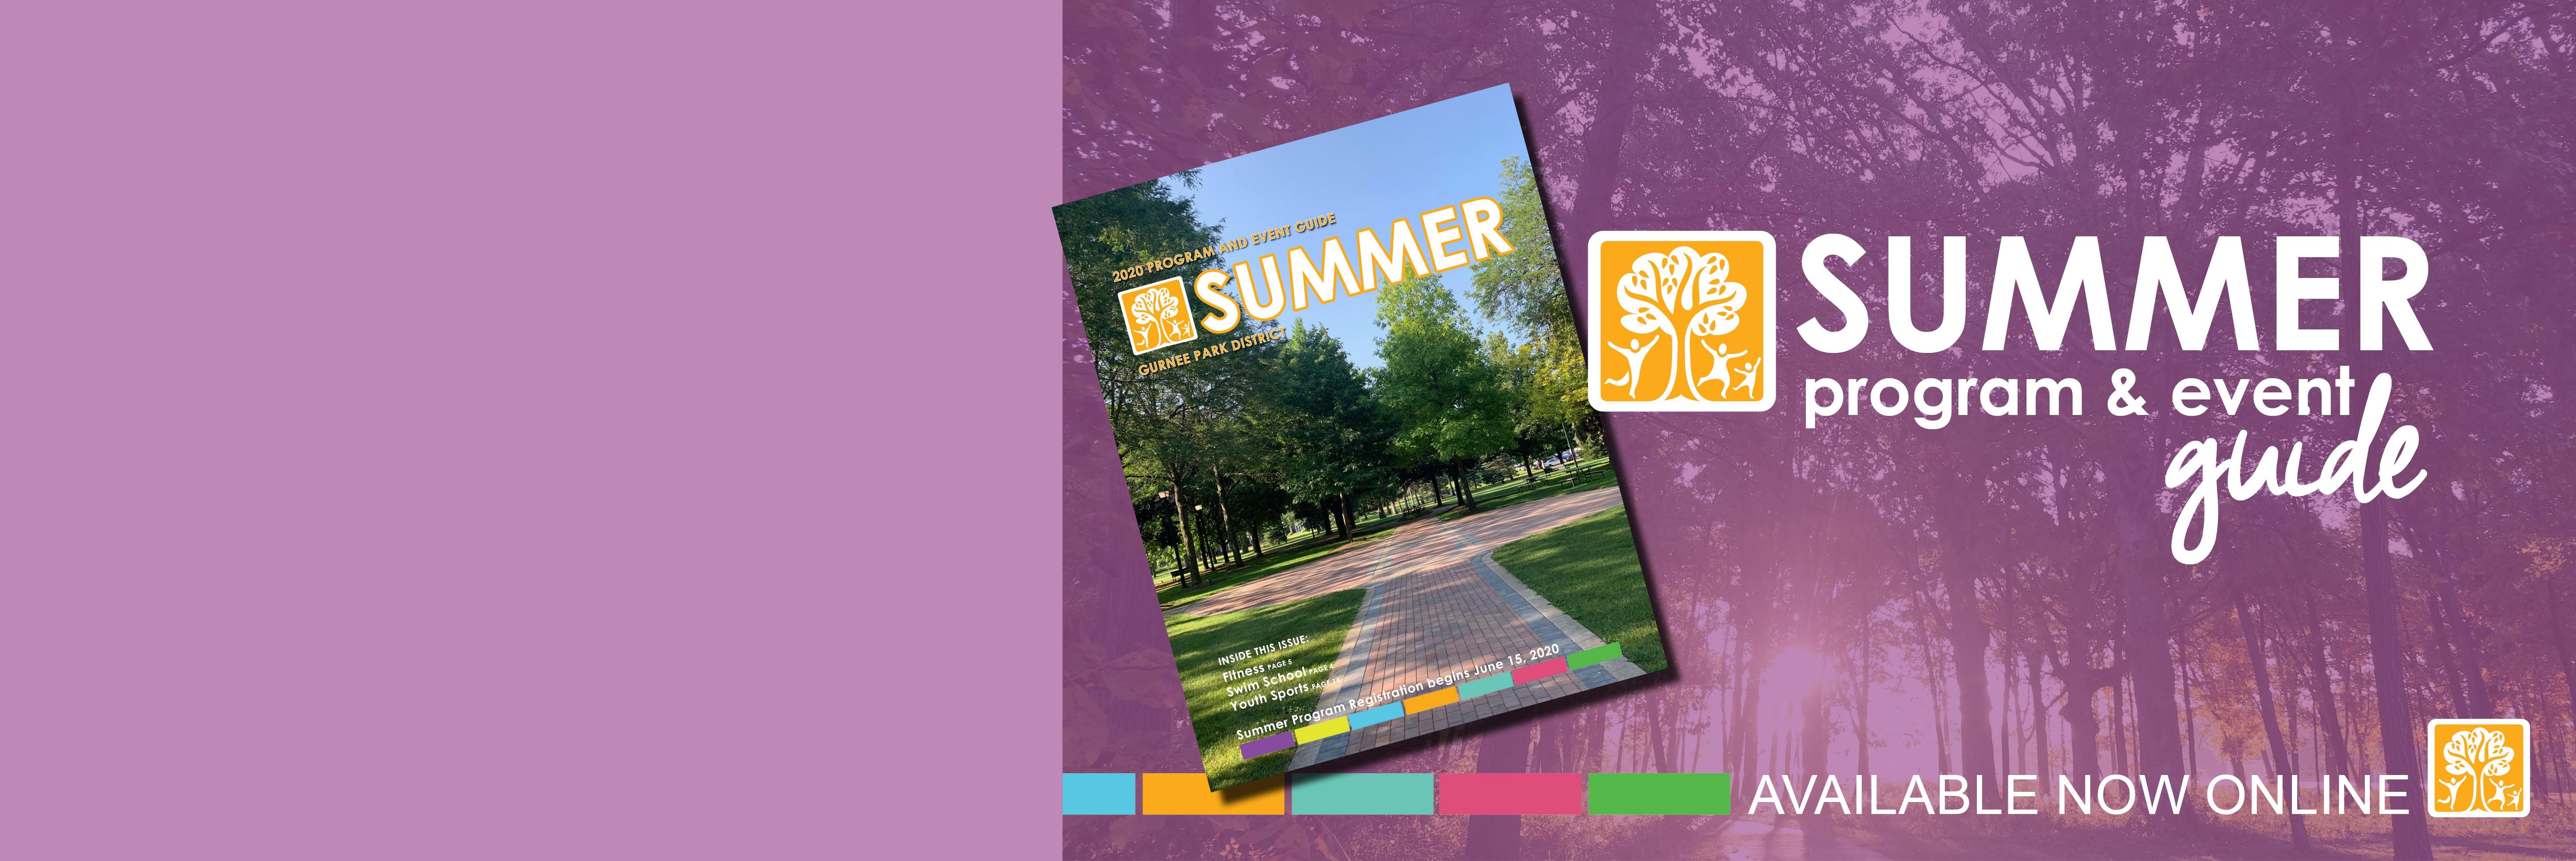 View Summer Program Guide HERE